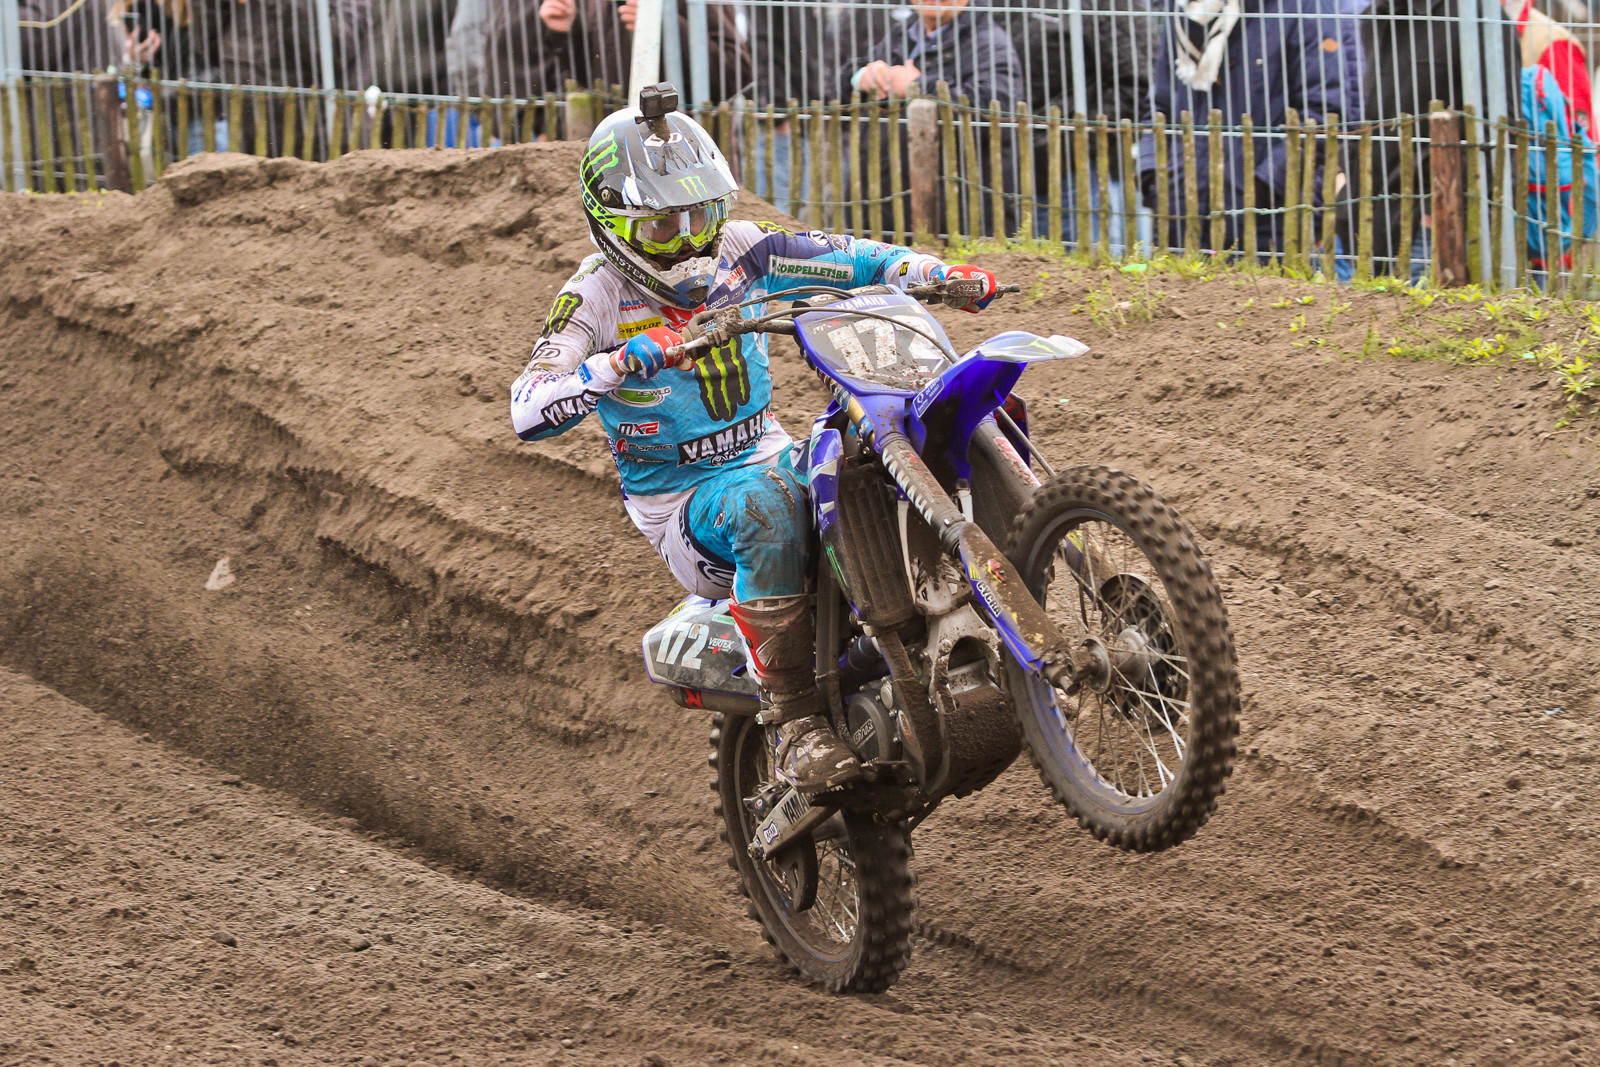 Brent van Doninck - Photo Blast: 2017 MXGP of Valkenswaard - Motocross Pictures - Vital MX